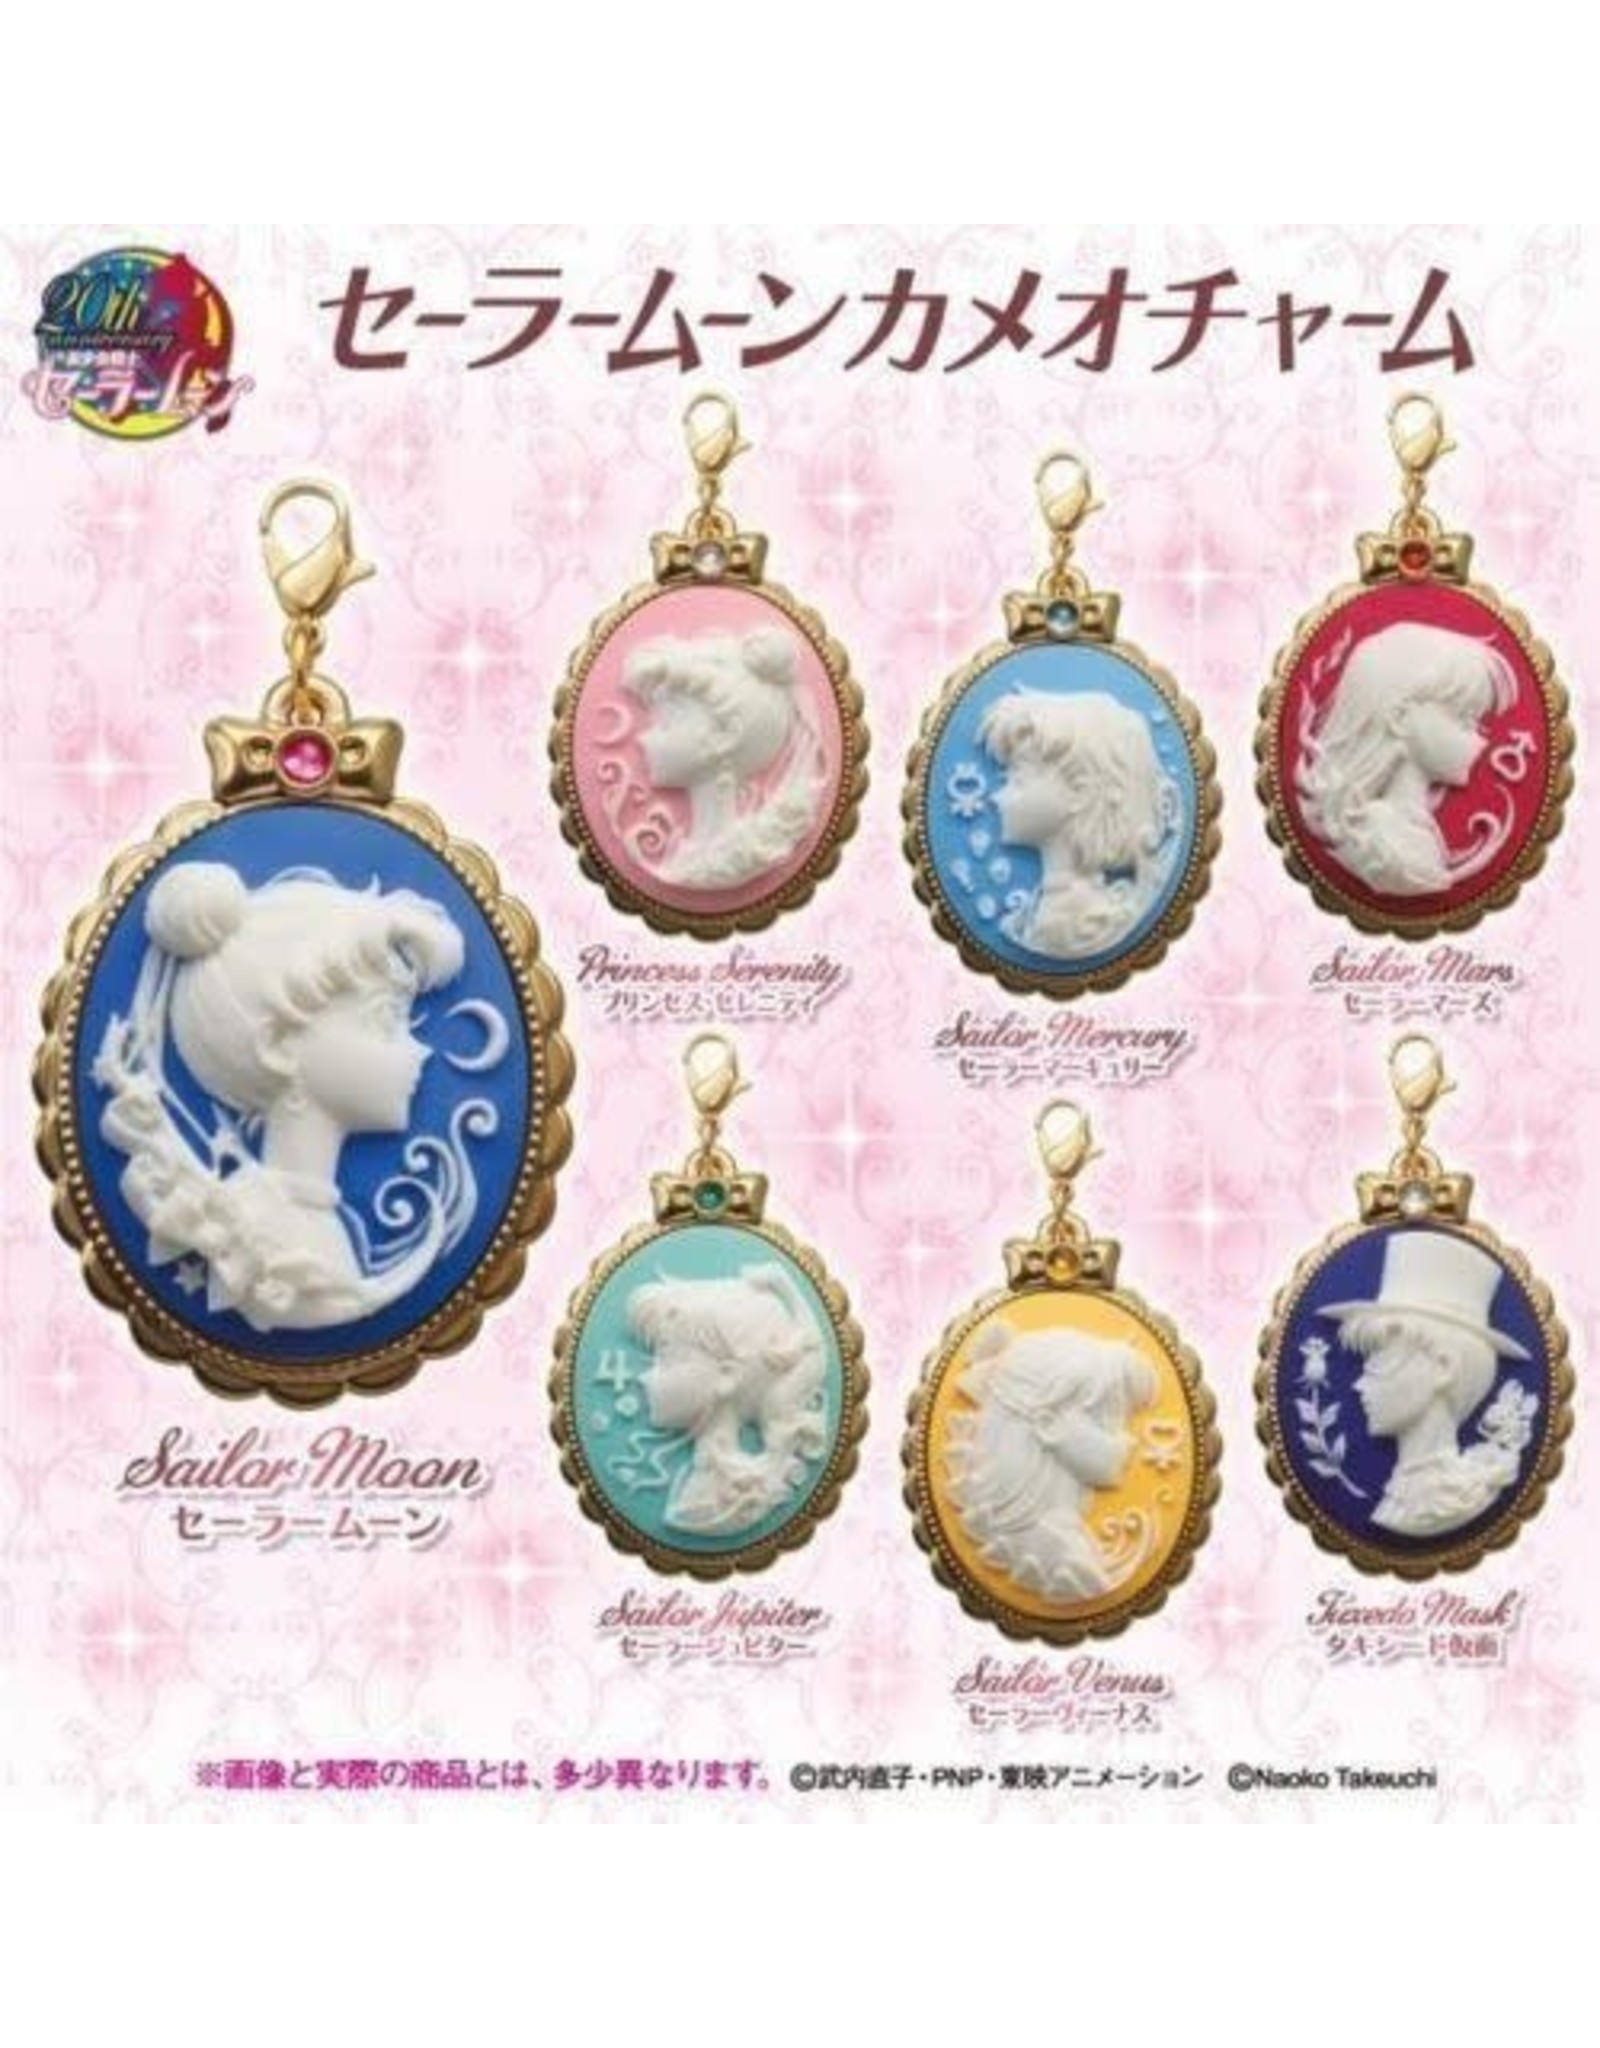 Sailor Moon Cameo Charm Key Chain